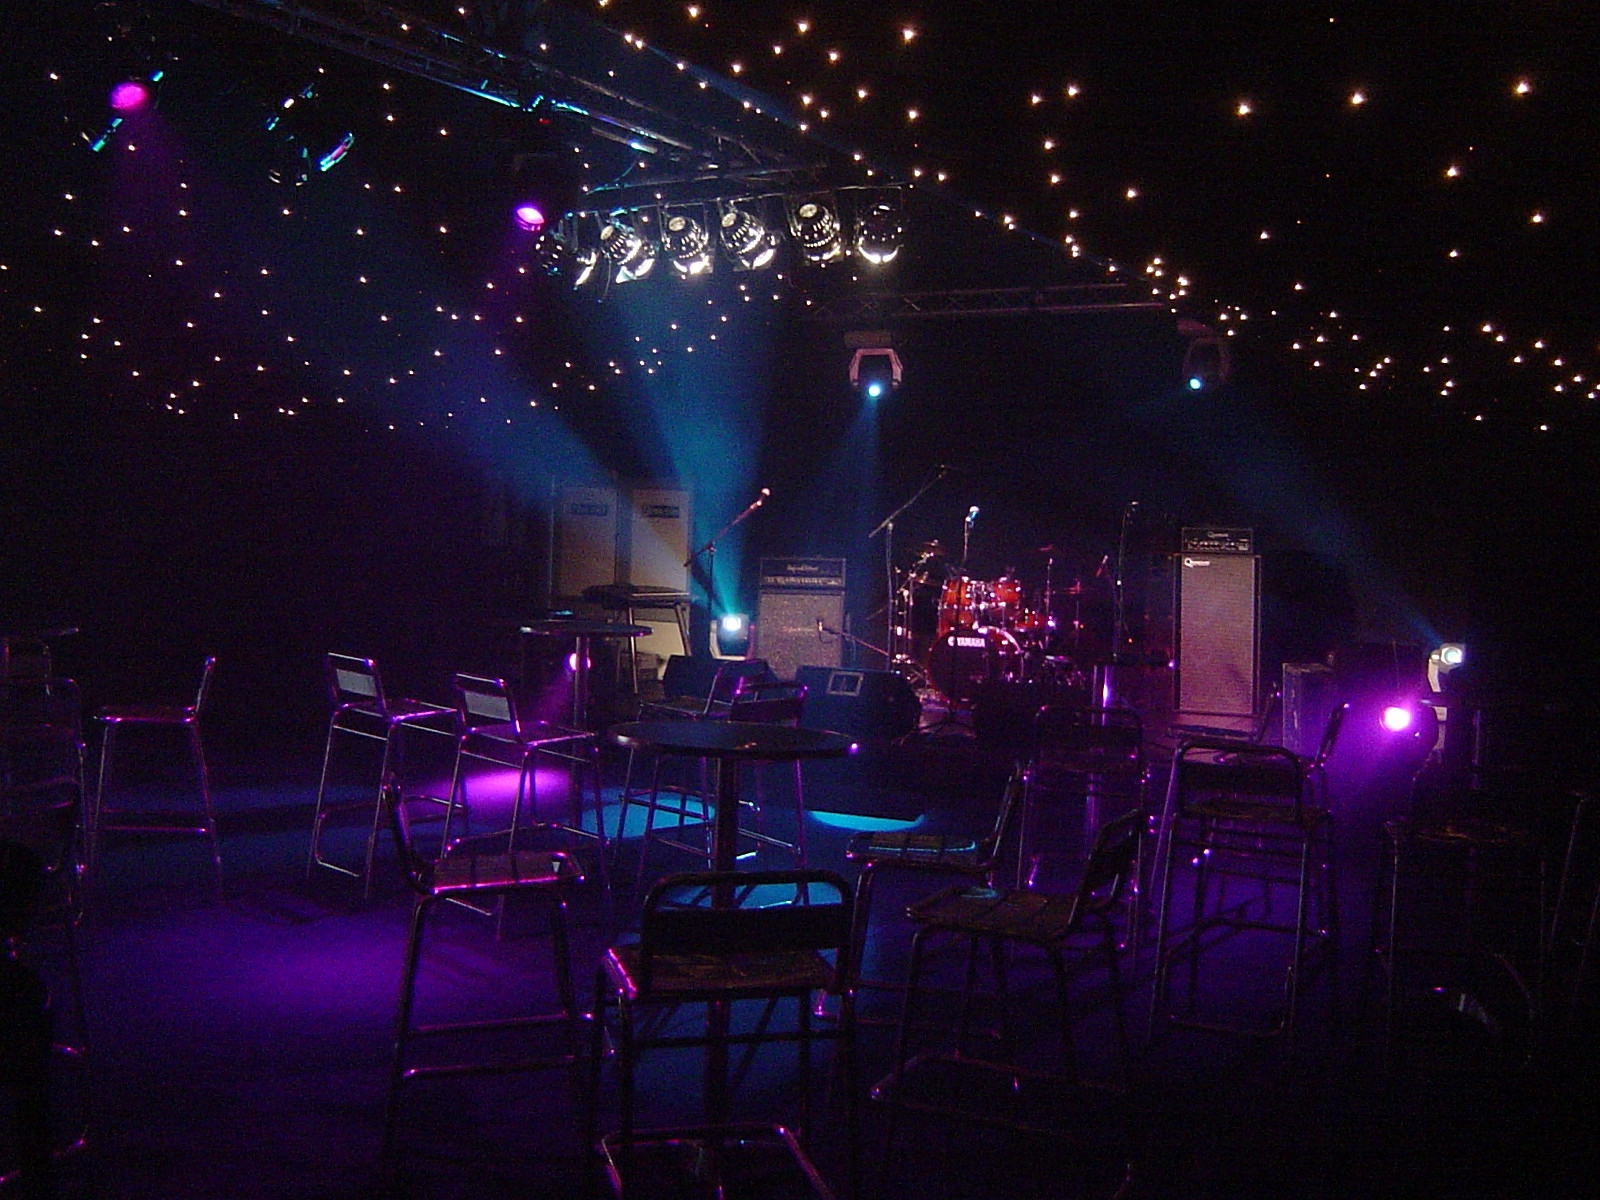 A very moody live performance stage